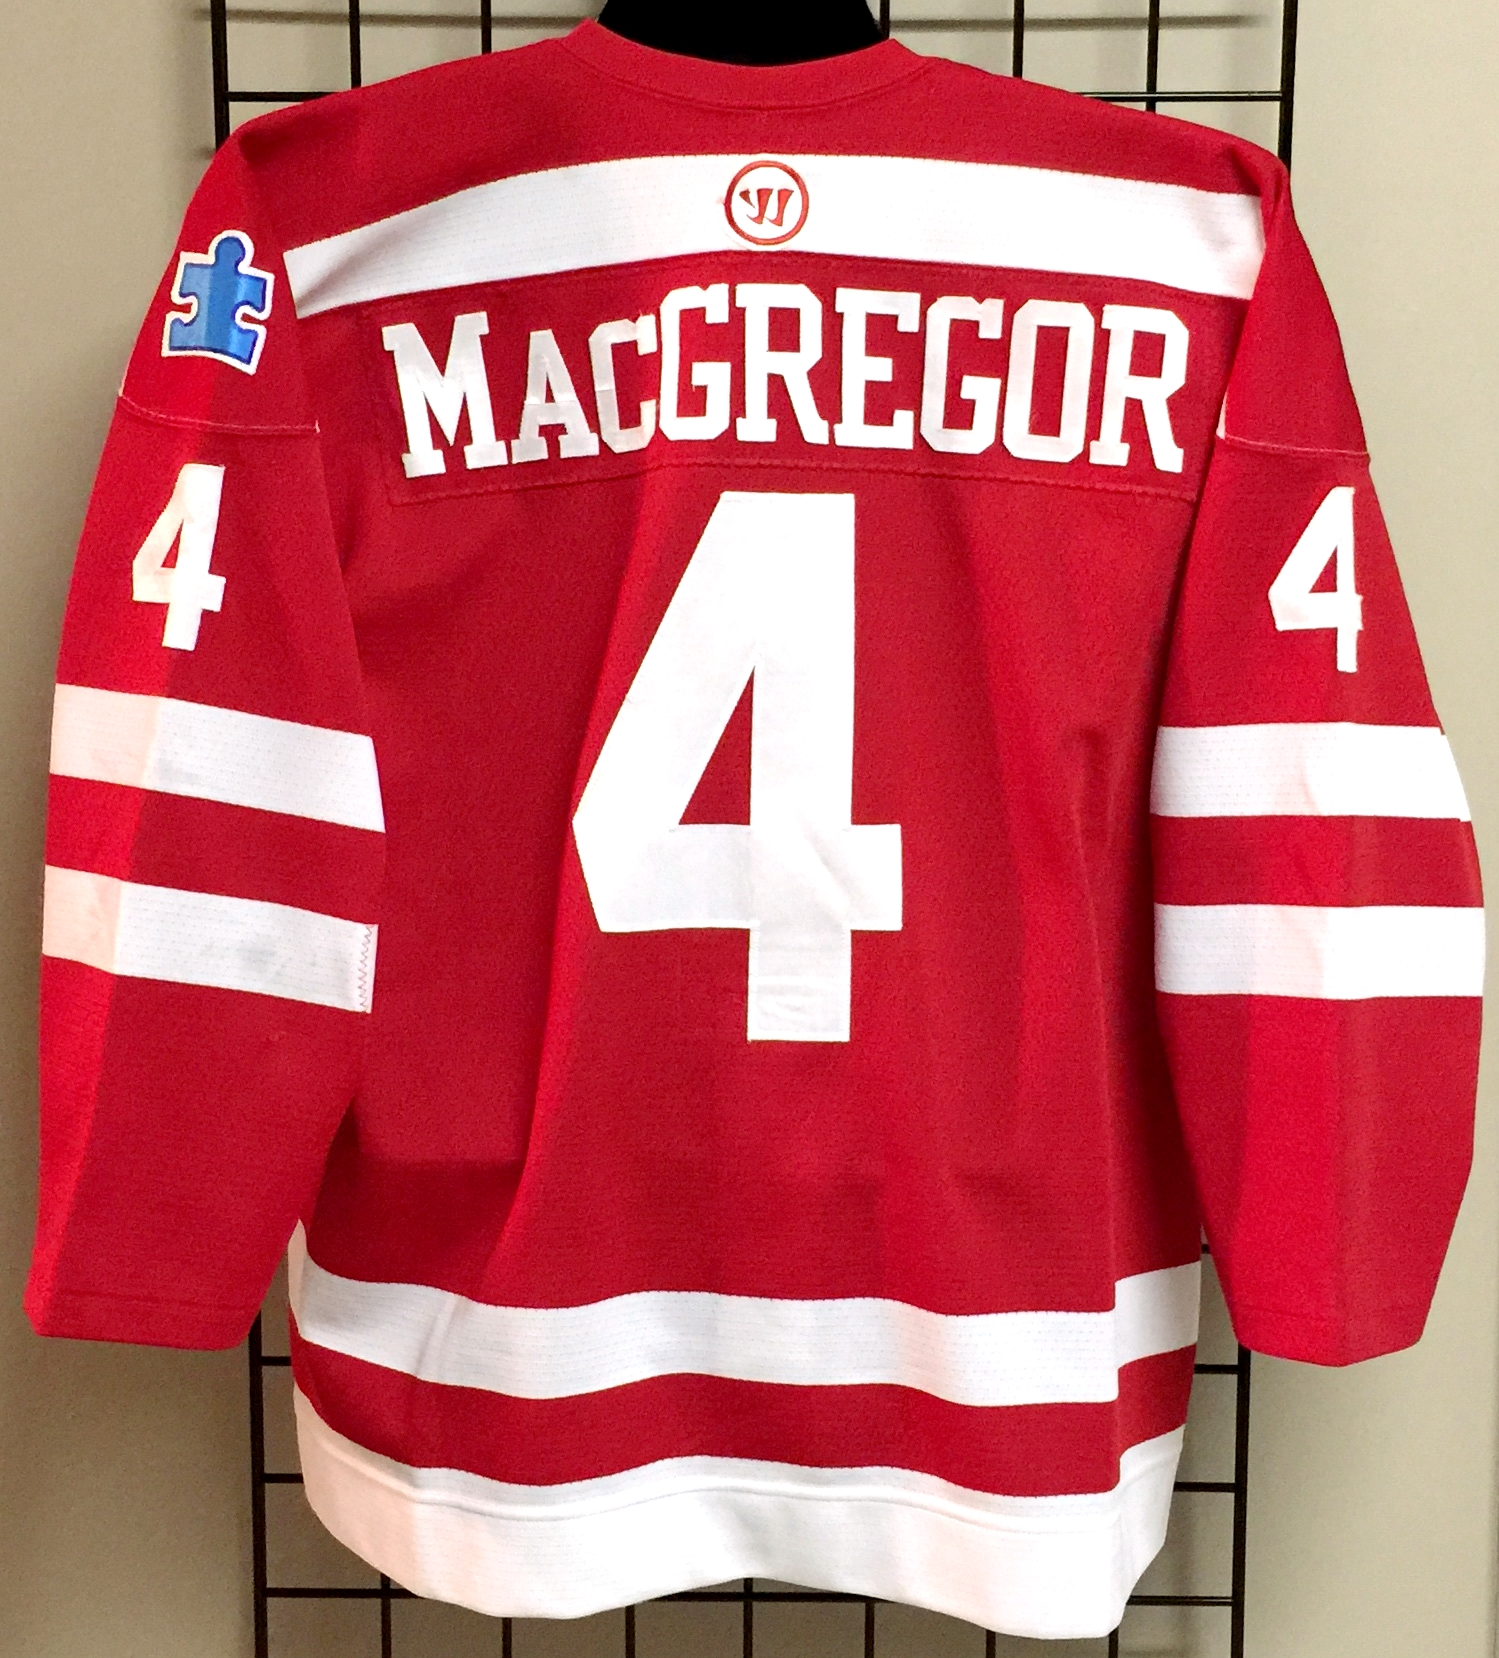 differently 08f7e 5b474 Patrick MacGregor - Boston University - Game Used/Worn ...